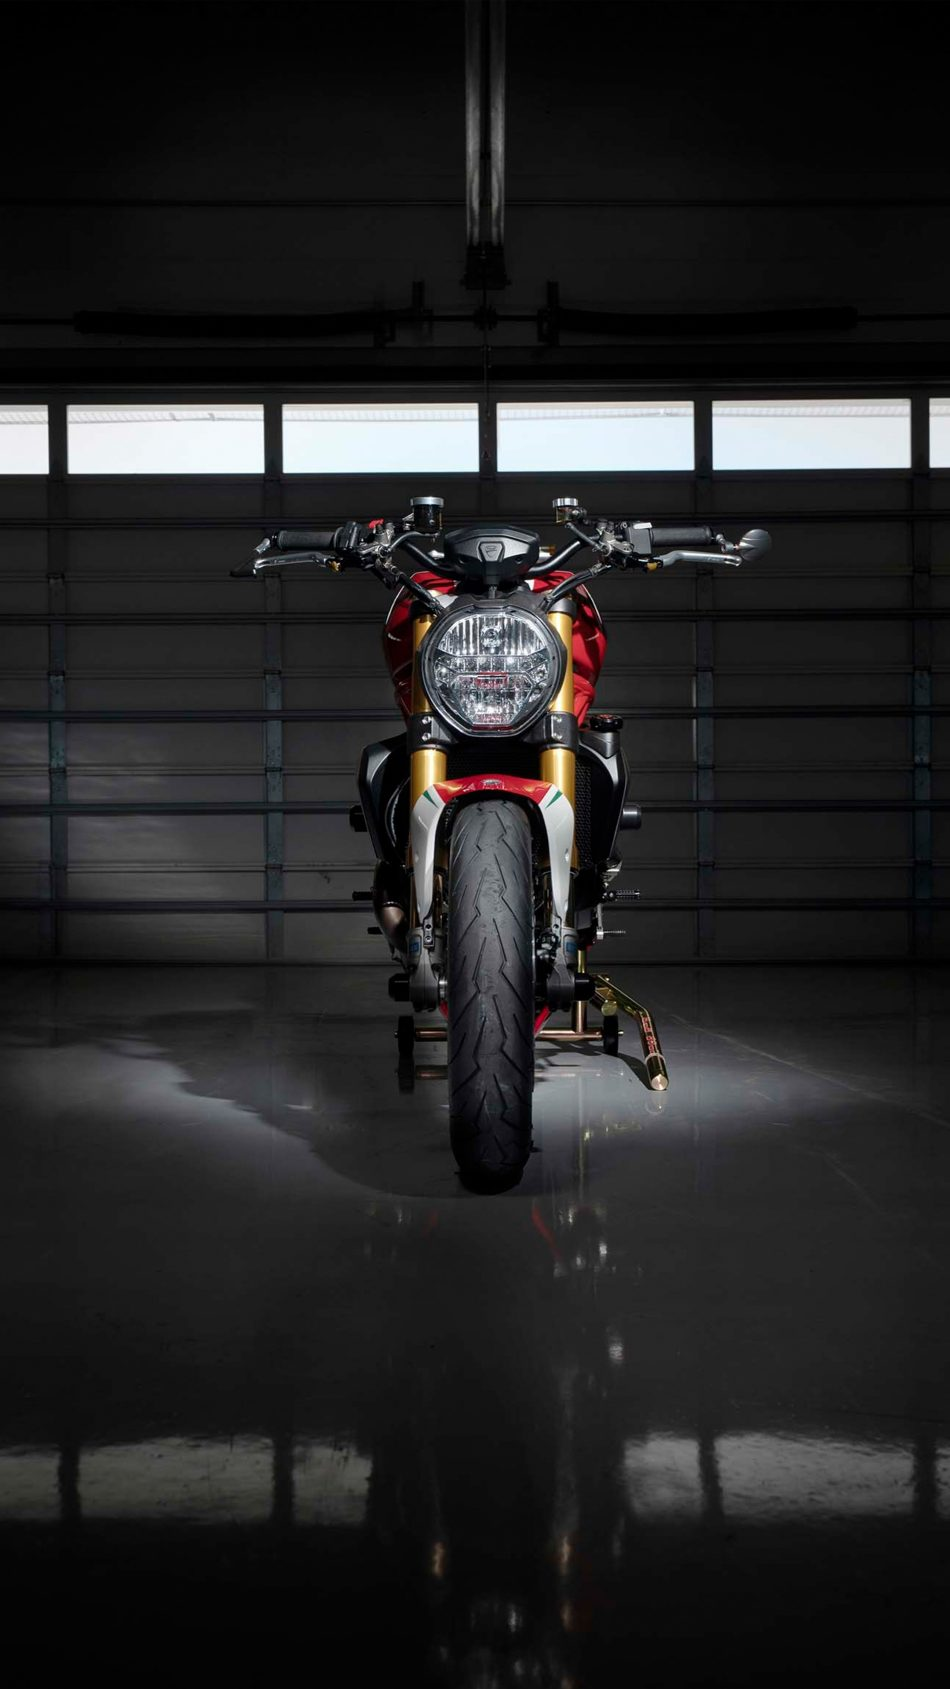 Ducati Monster Tricolore 2019 4K Ultra HD Mobile Wallpaper